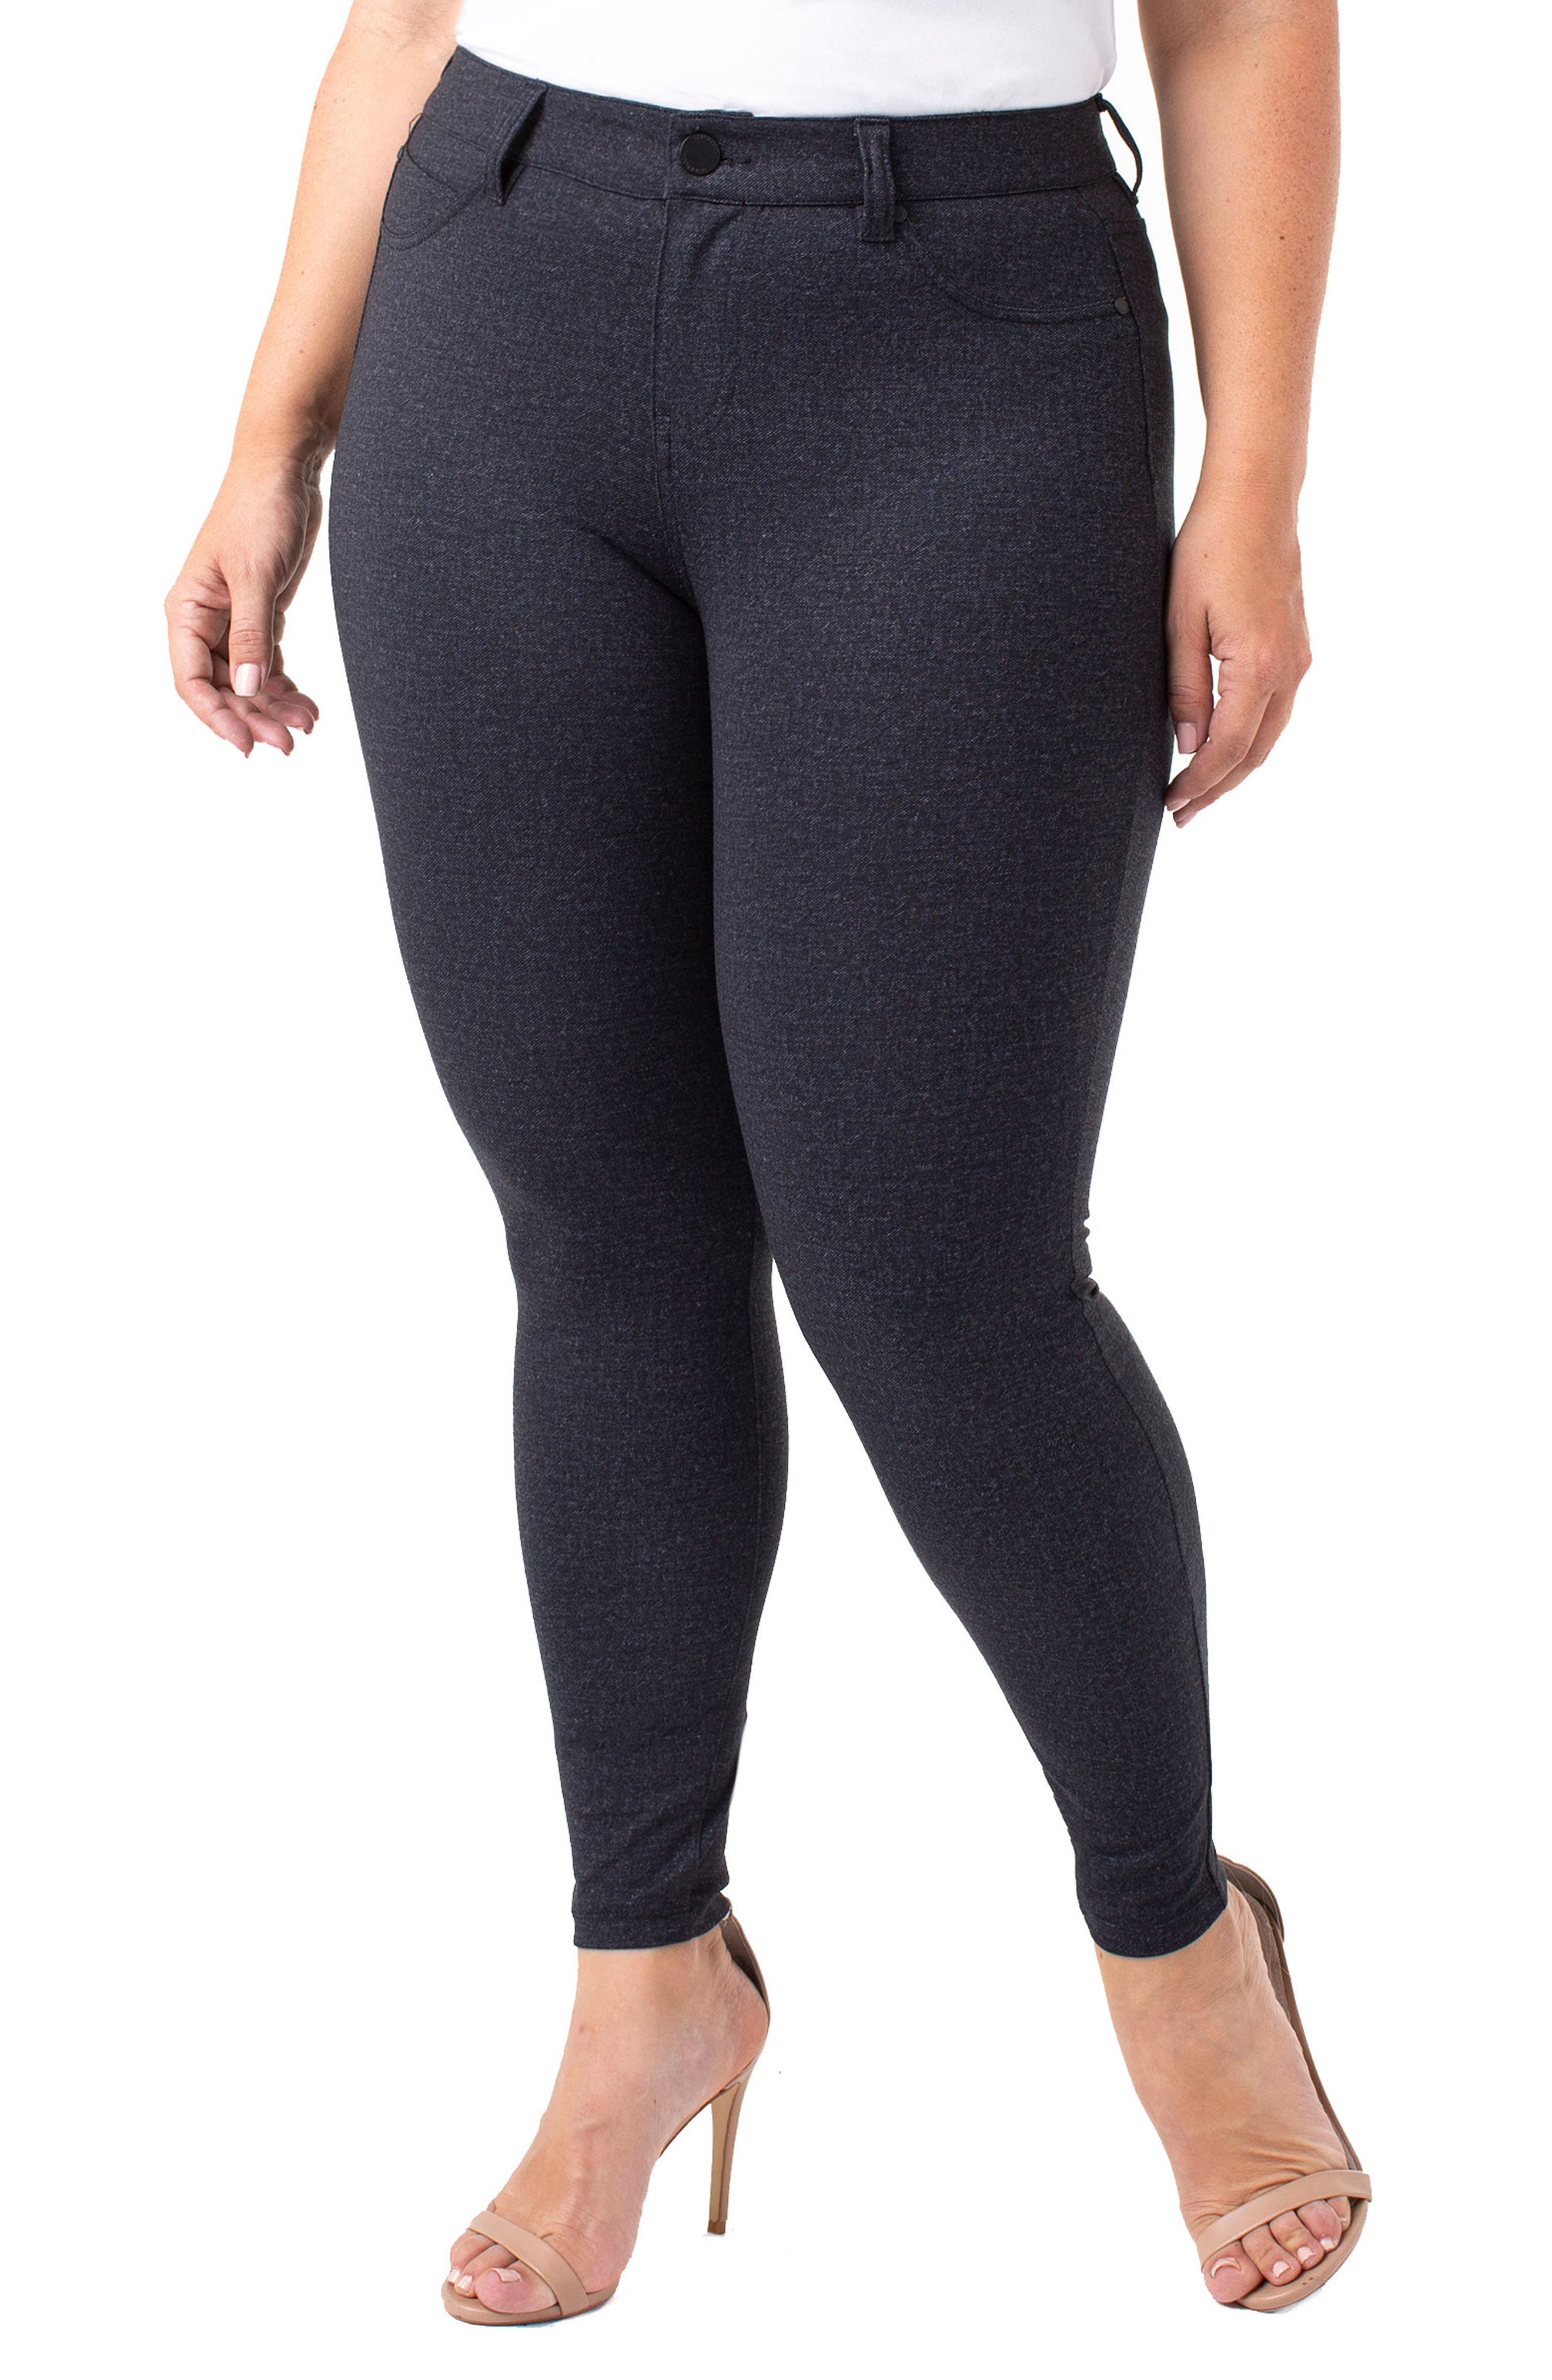 Plus Size Liverpool Madonna Leggings, Grey